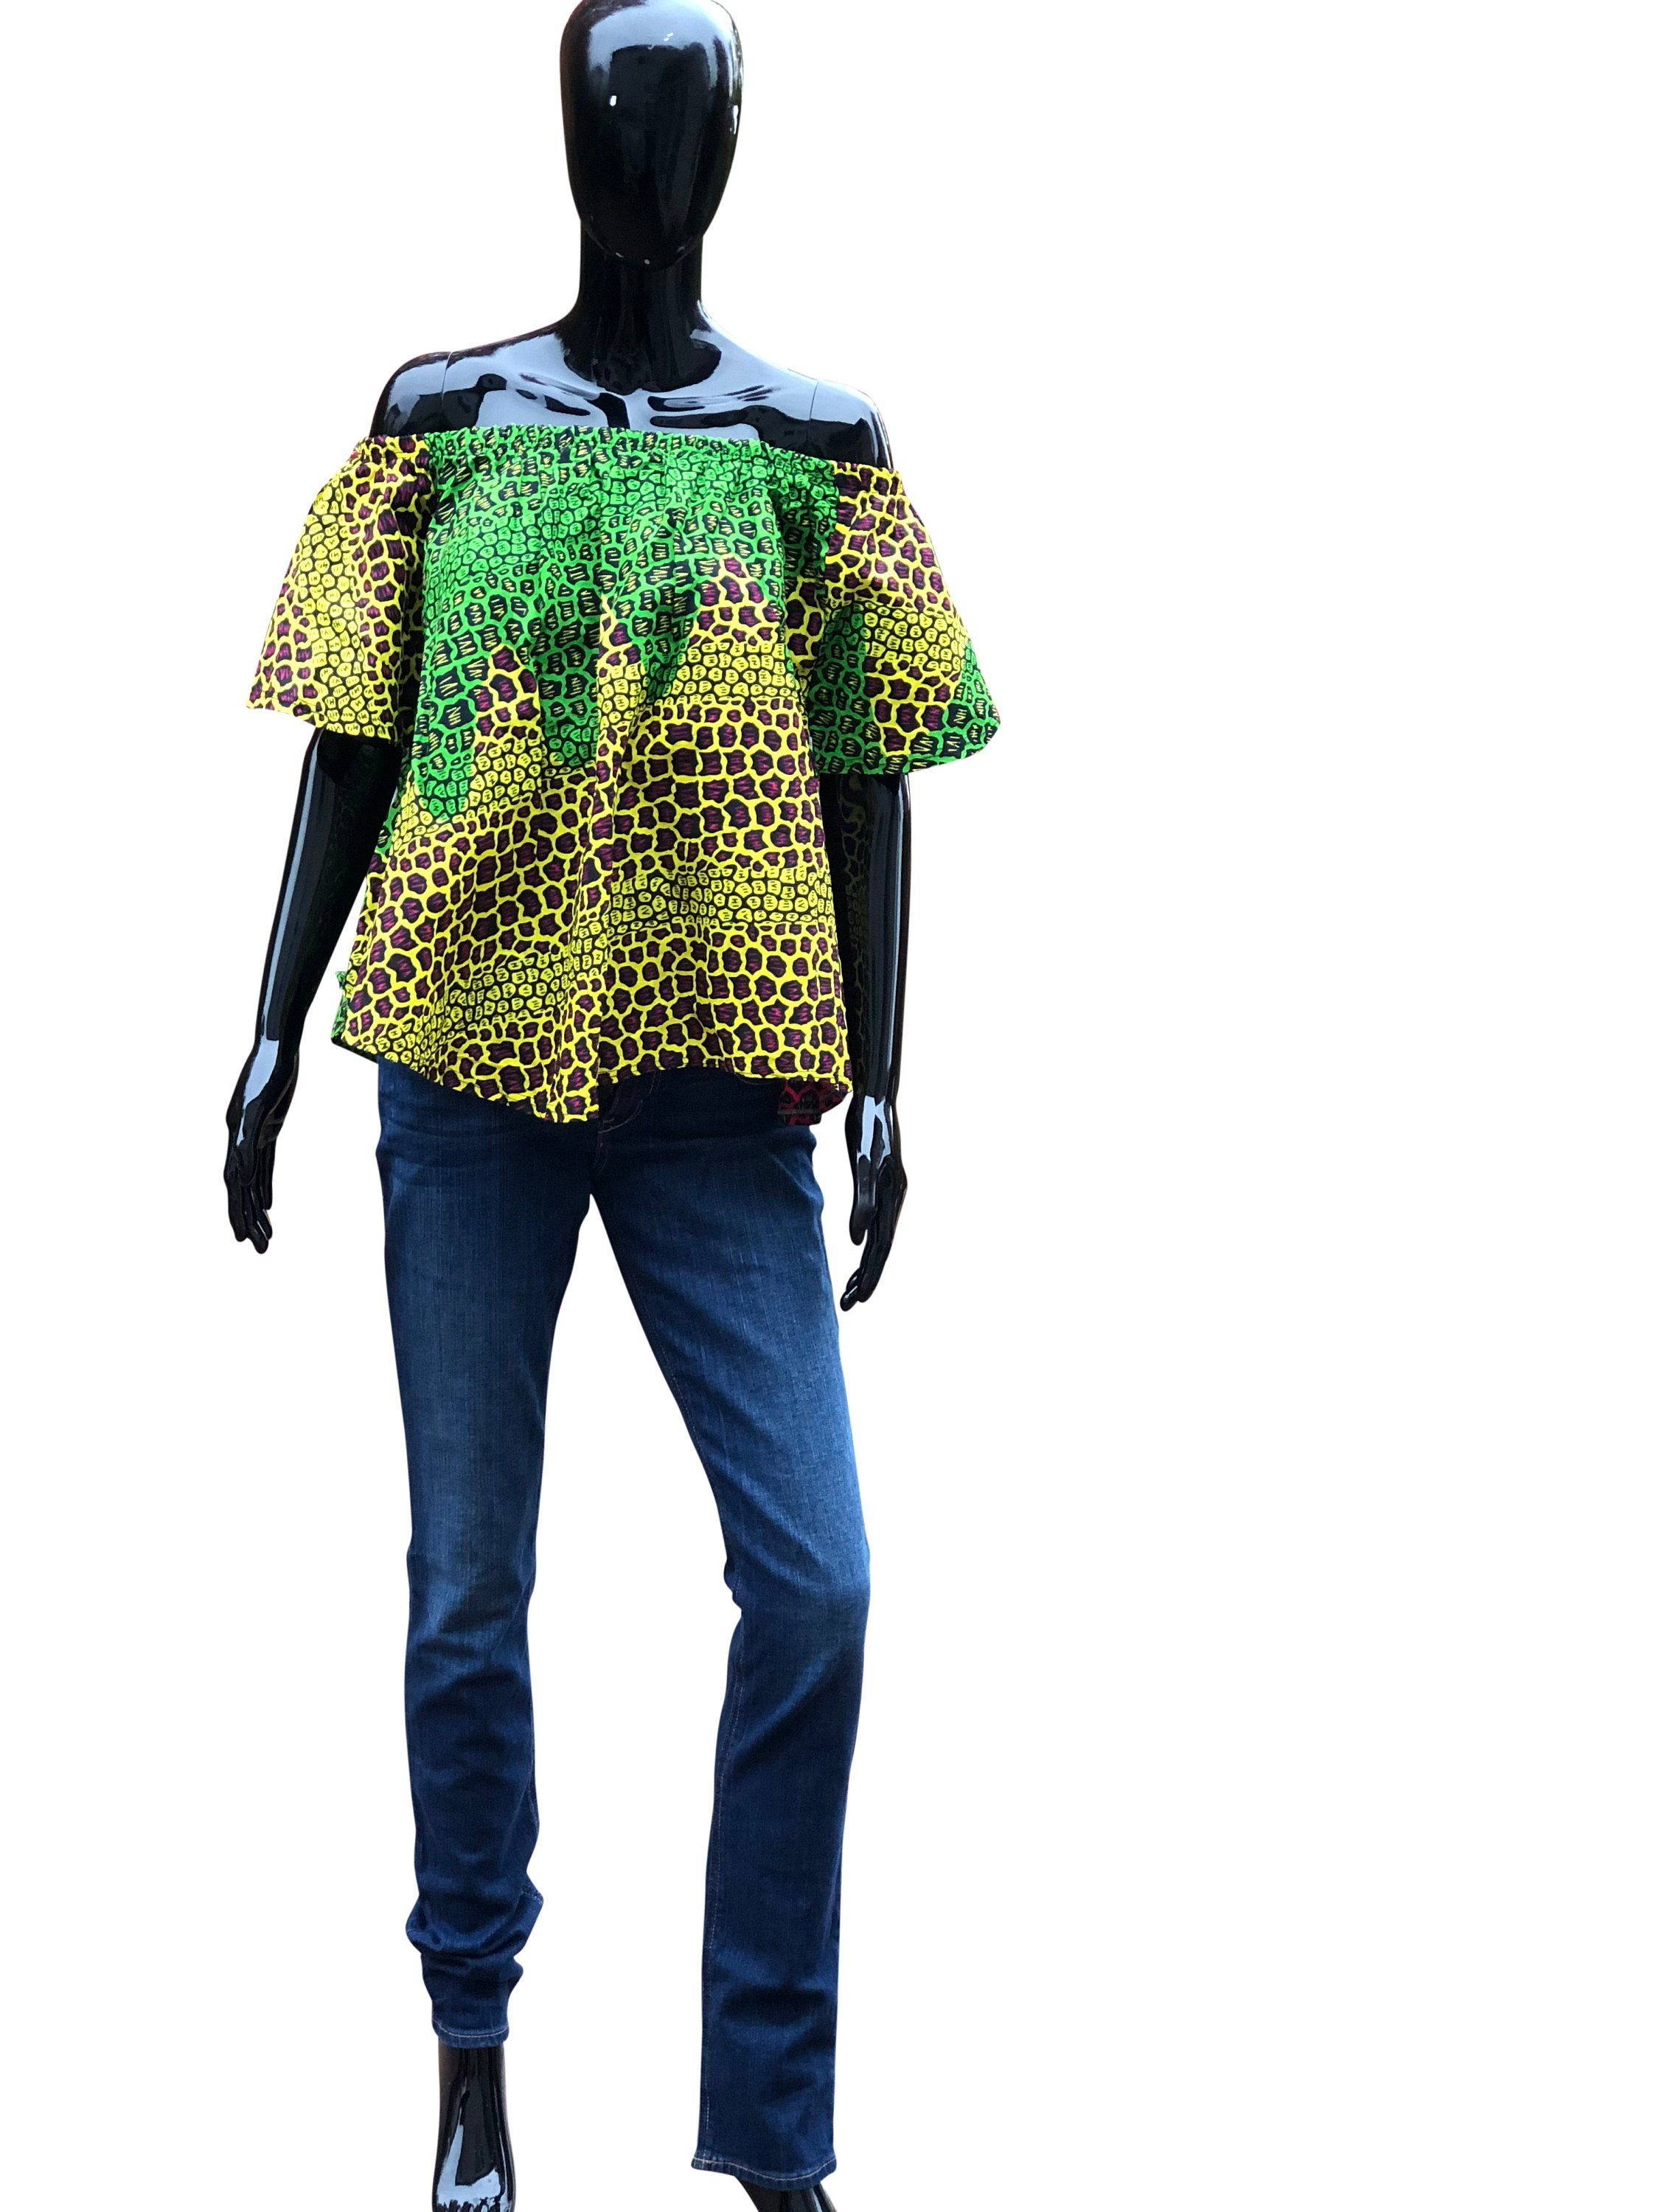 9f5cb63b2 Off shoulder top, crop top, clothing for women, ankara fashion, african  clothing for women, african styles, womens tops , gift her by EnoSaint on  Etsy